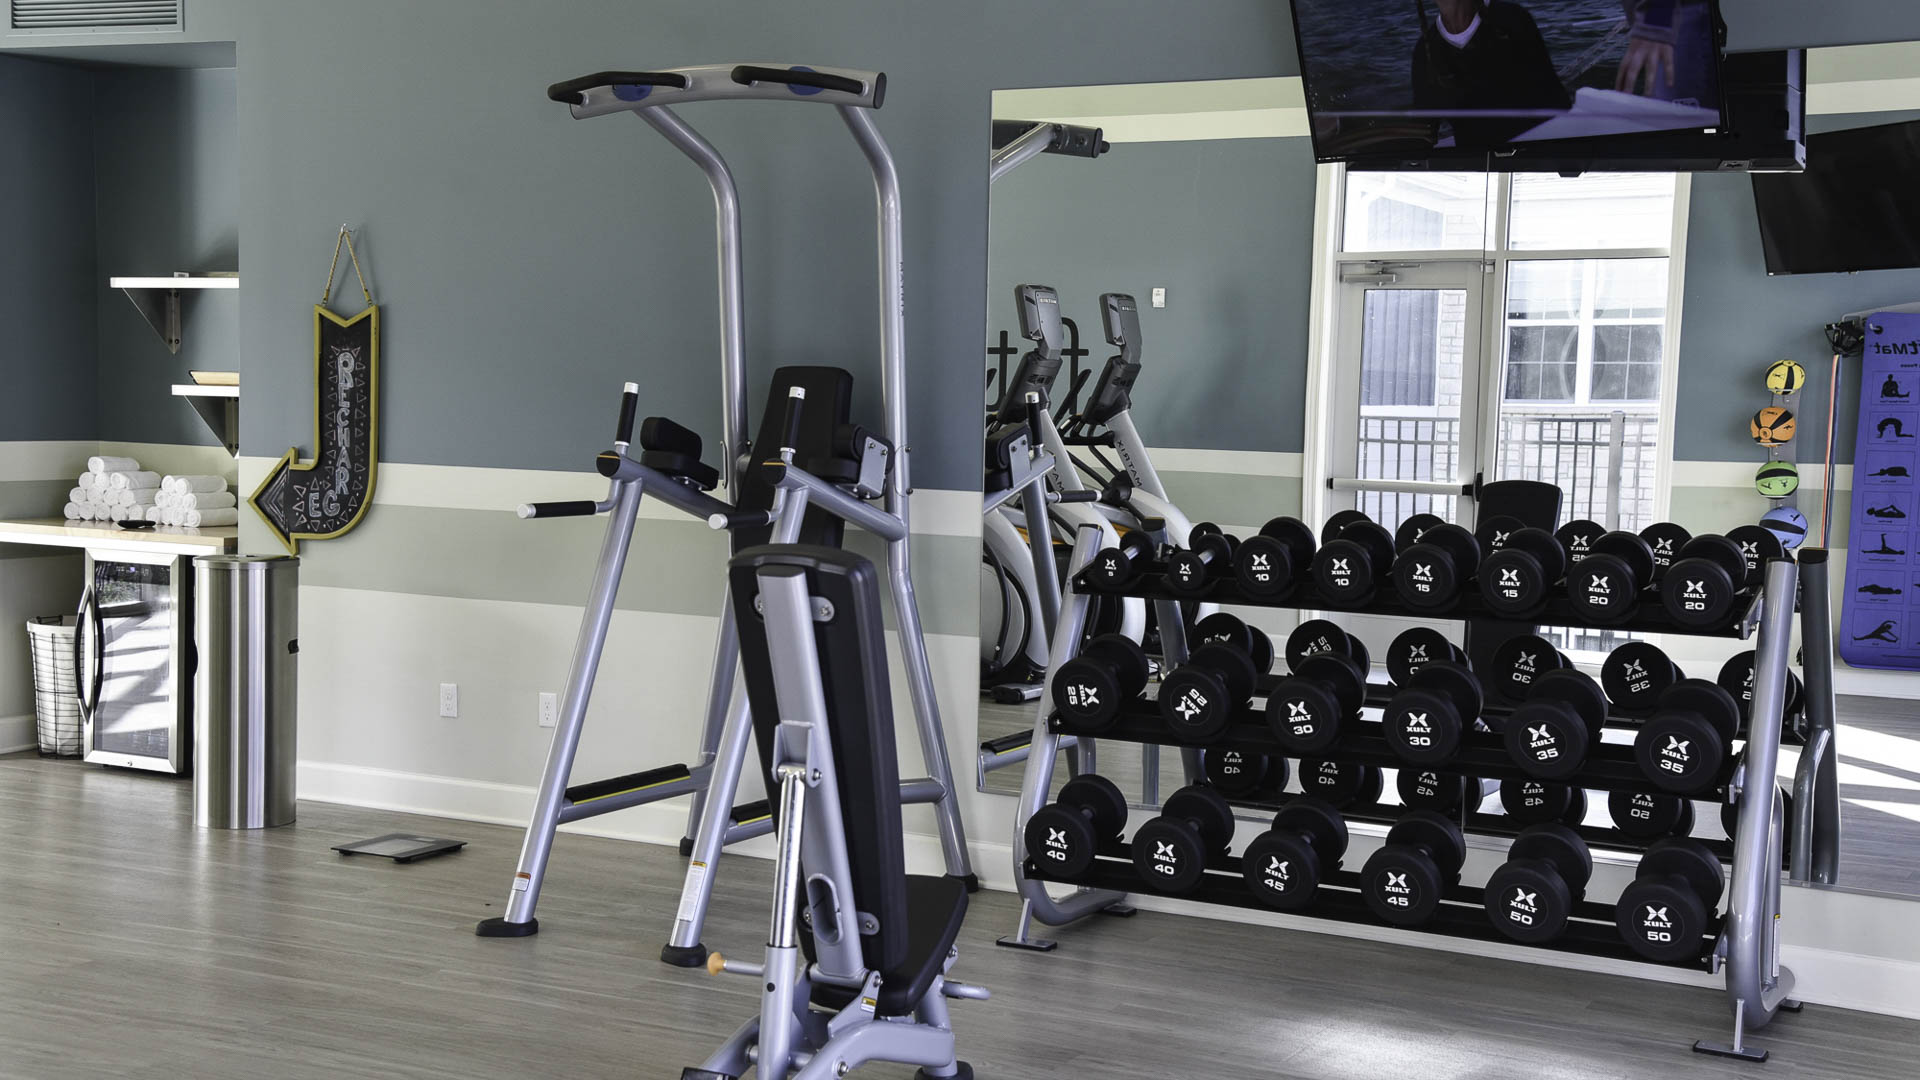 Springs at the Reserve 24 hour fitness center